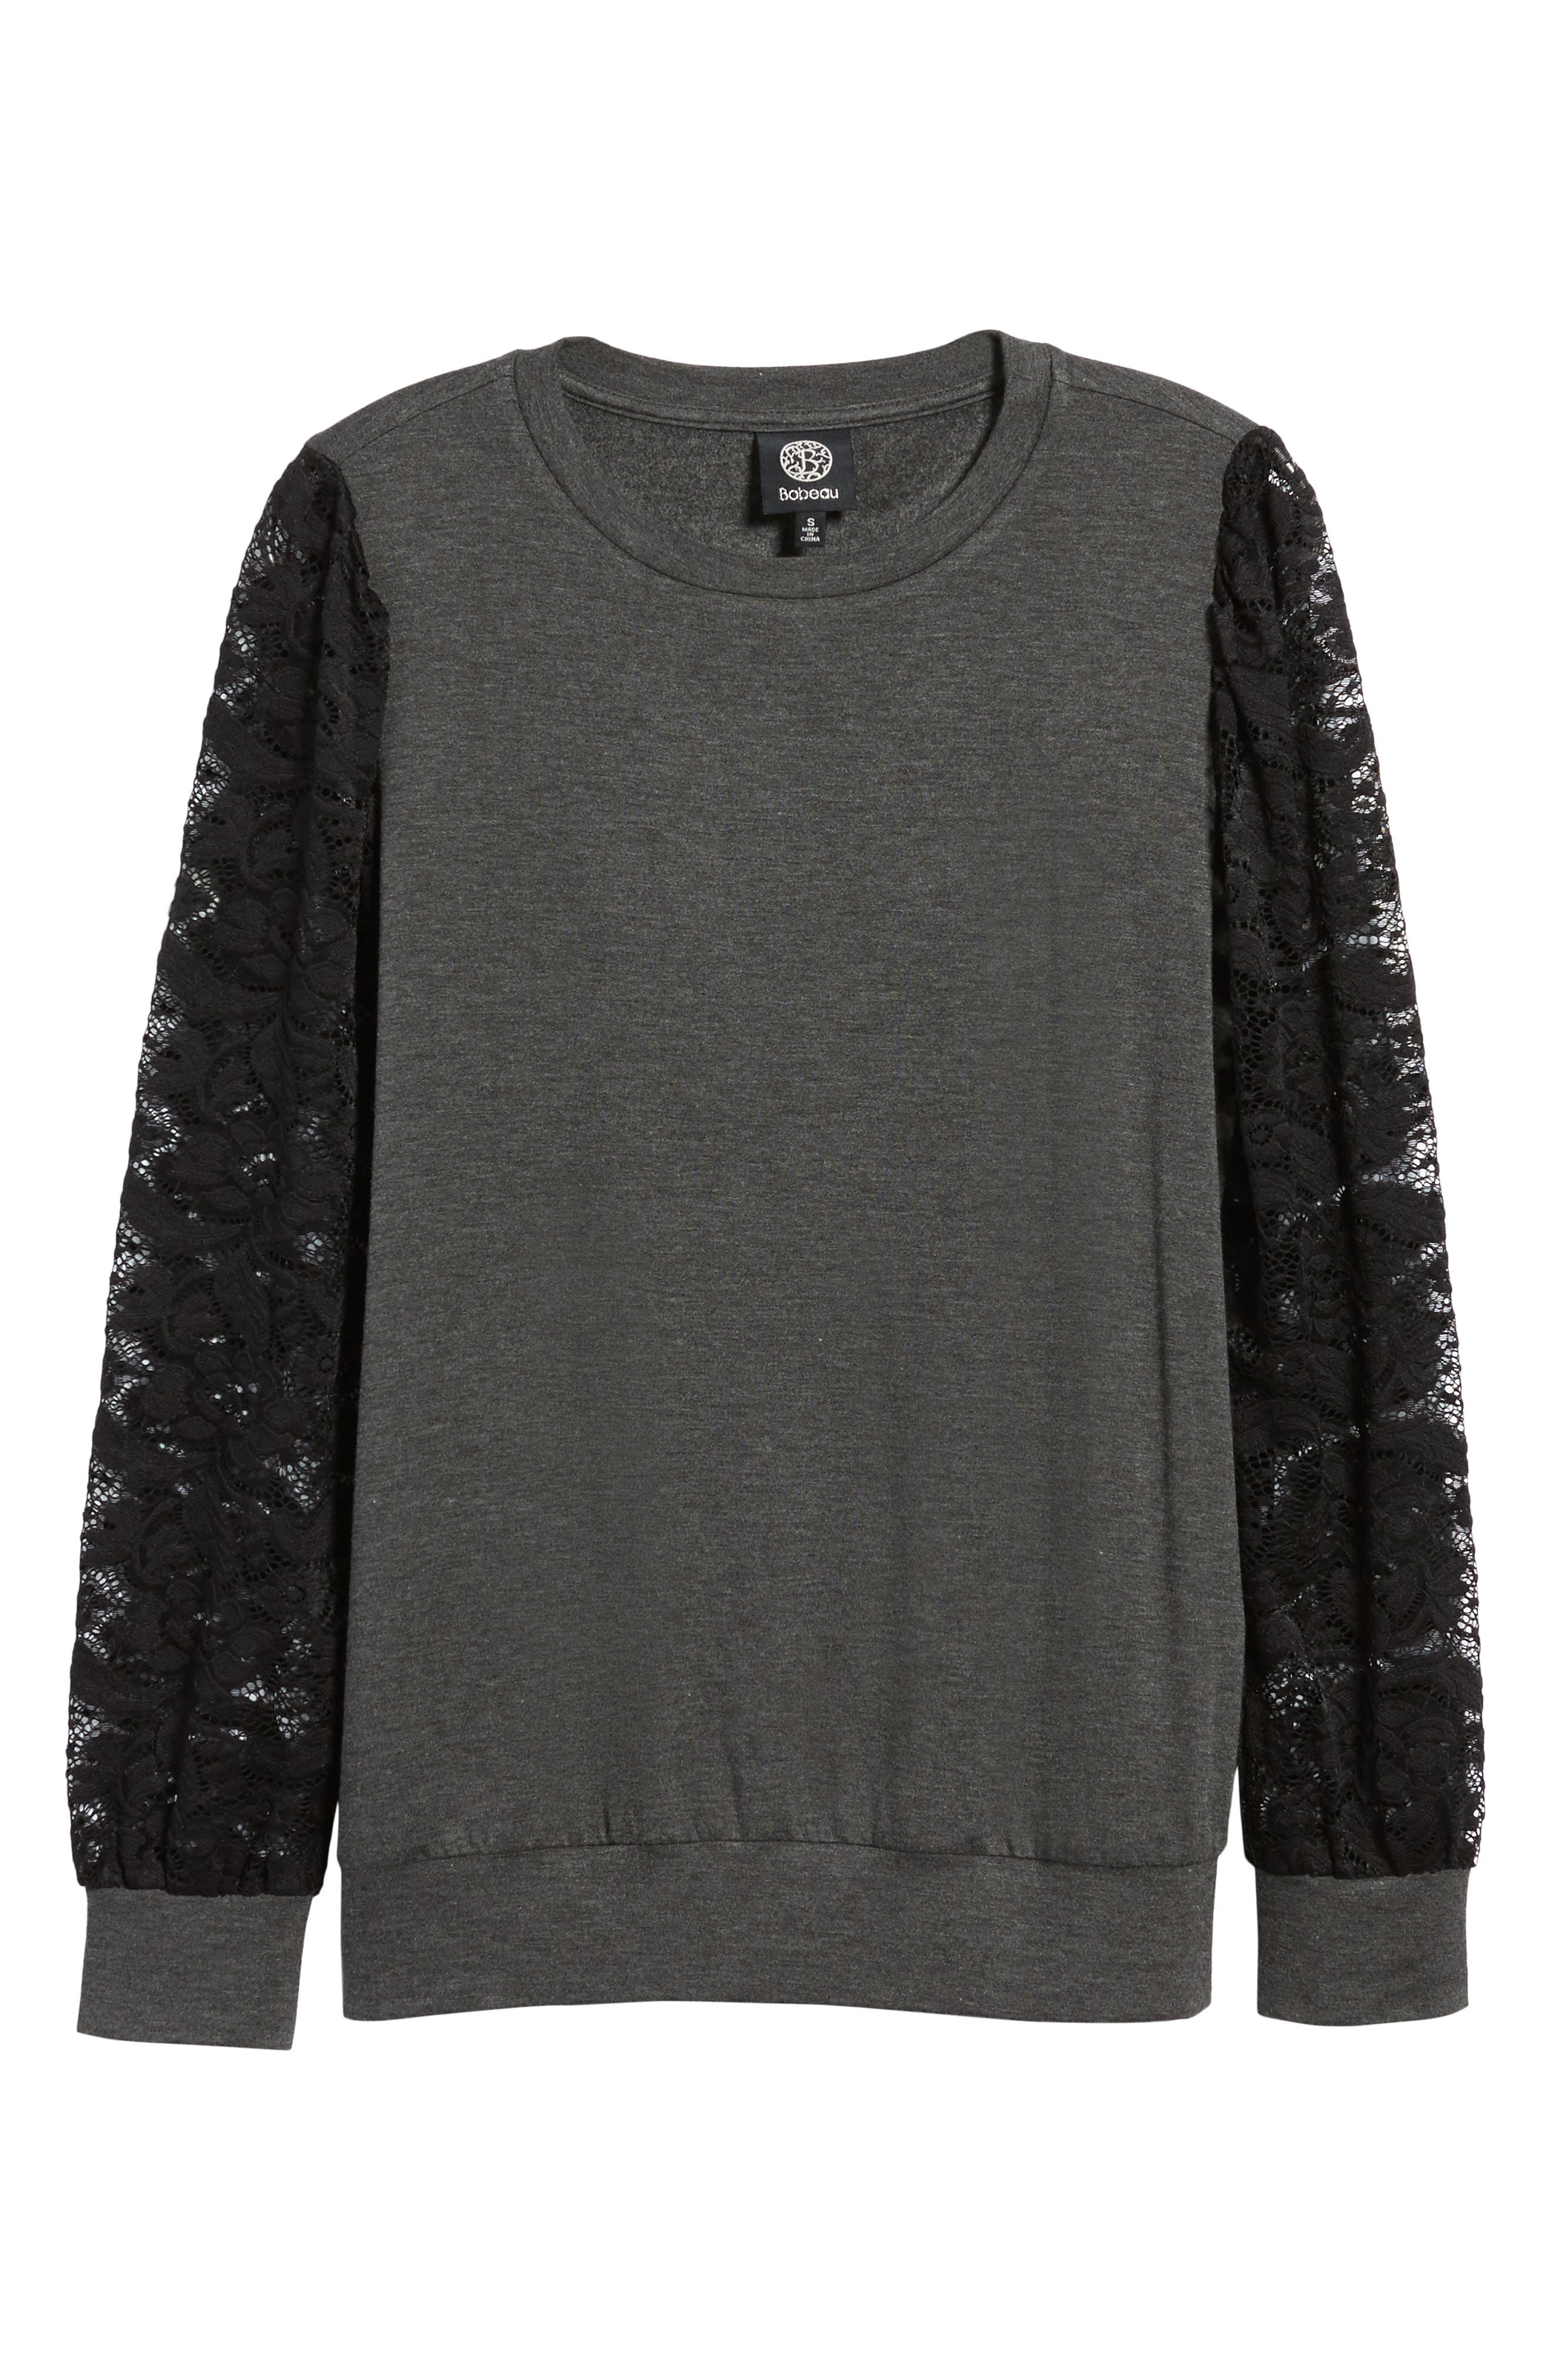 Lace Sleeve Sweatshirt,                             Alternate thumbnail 6, color,                             Dark Charcoal